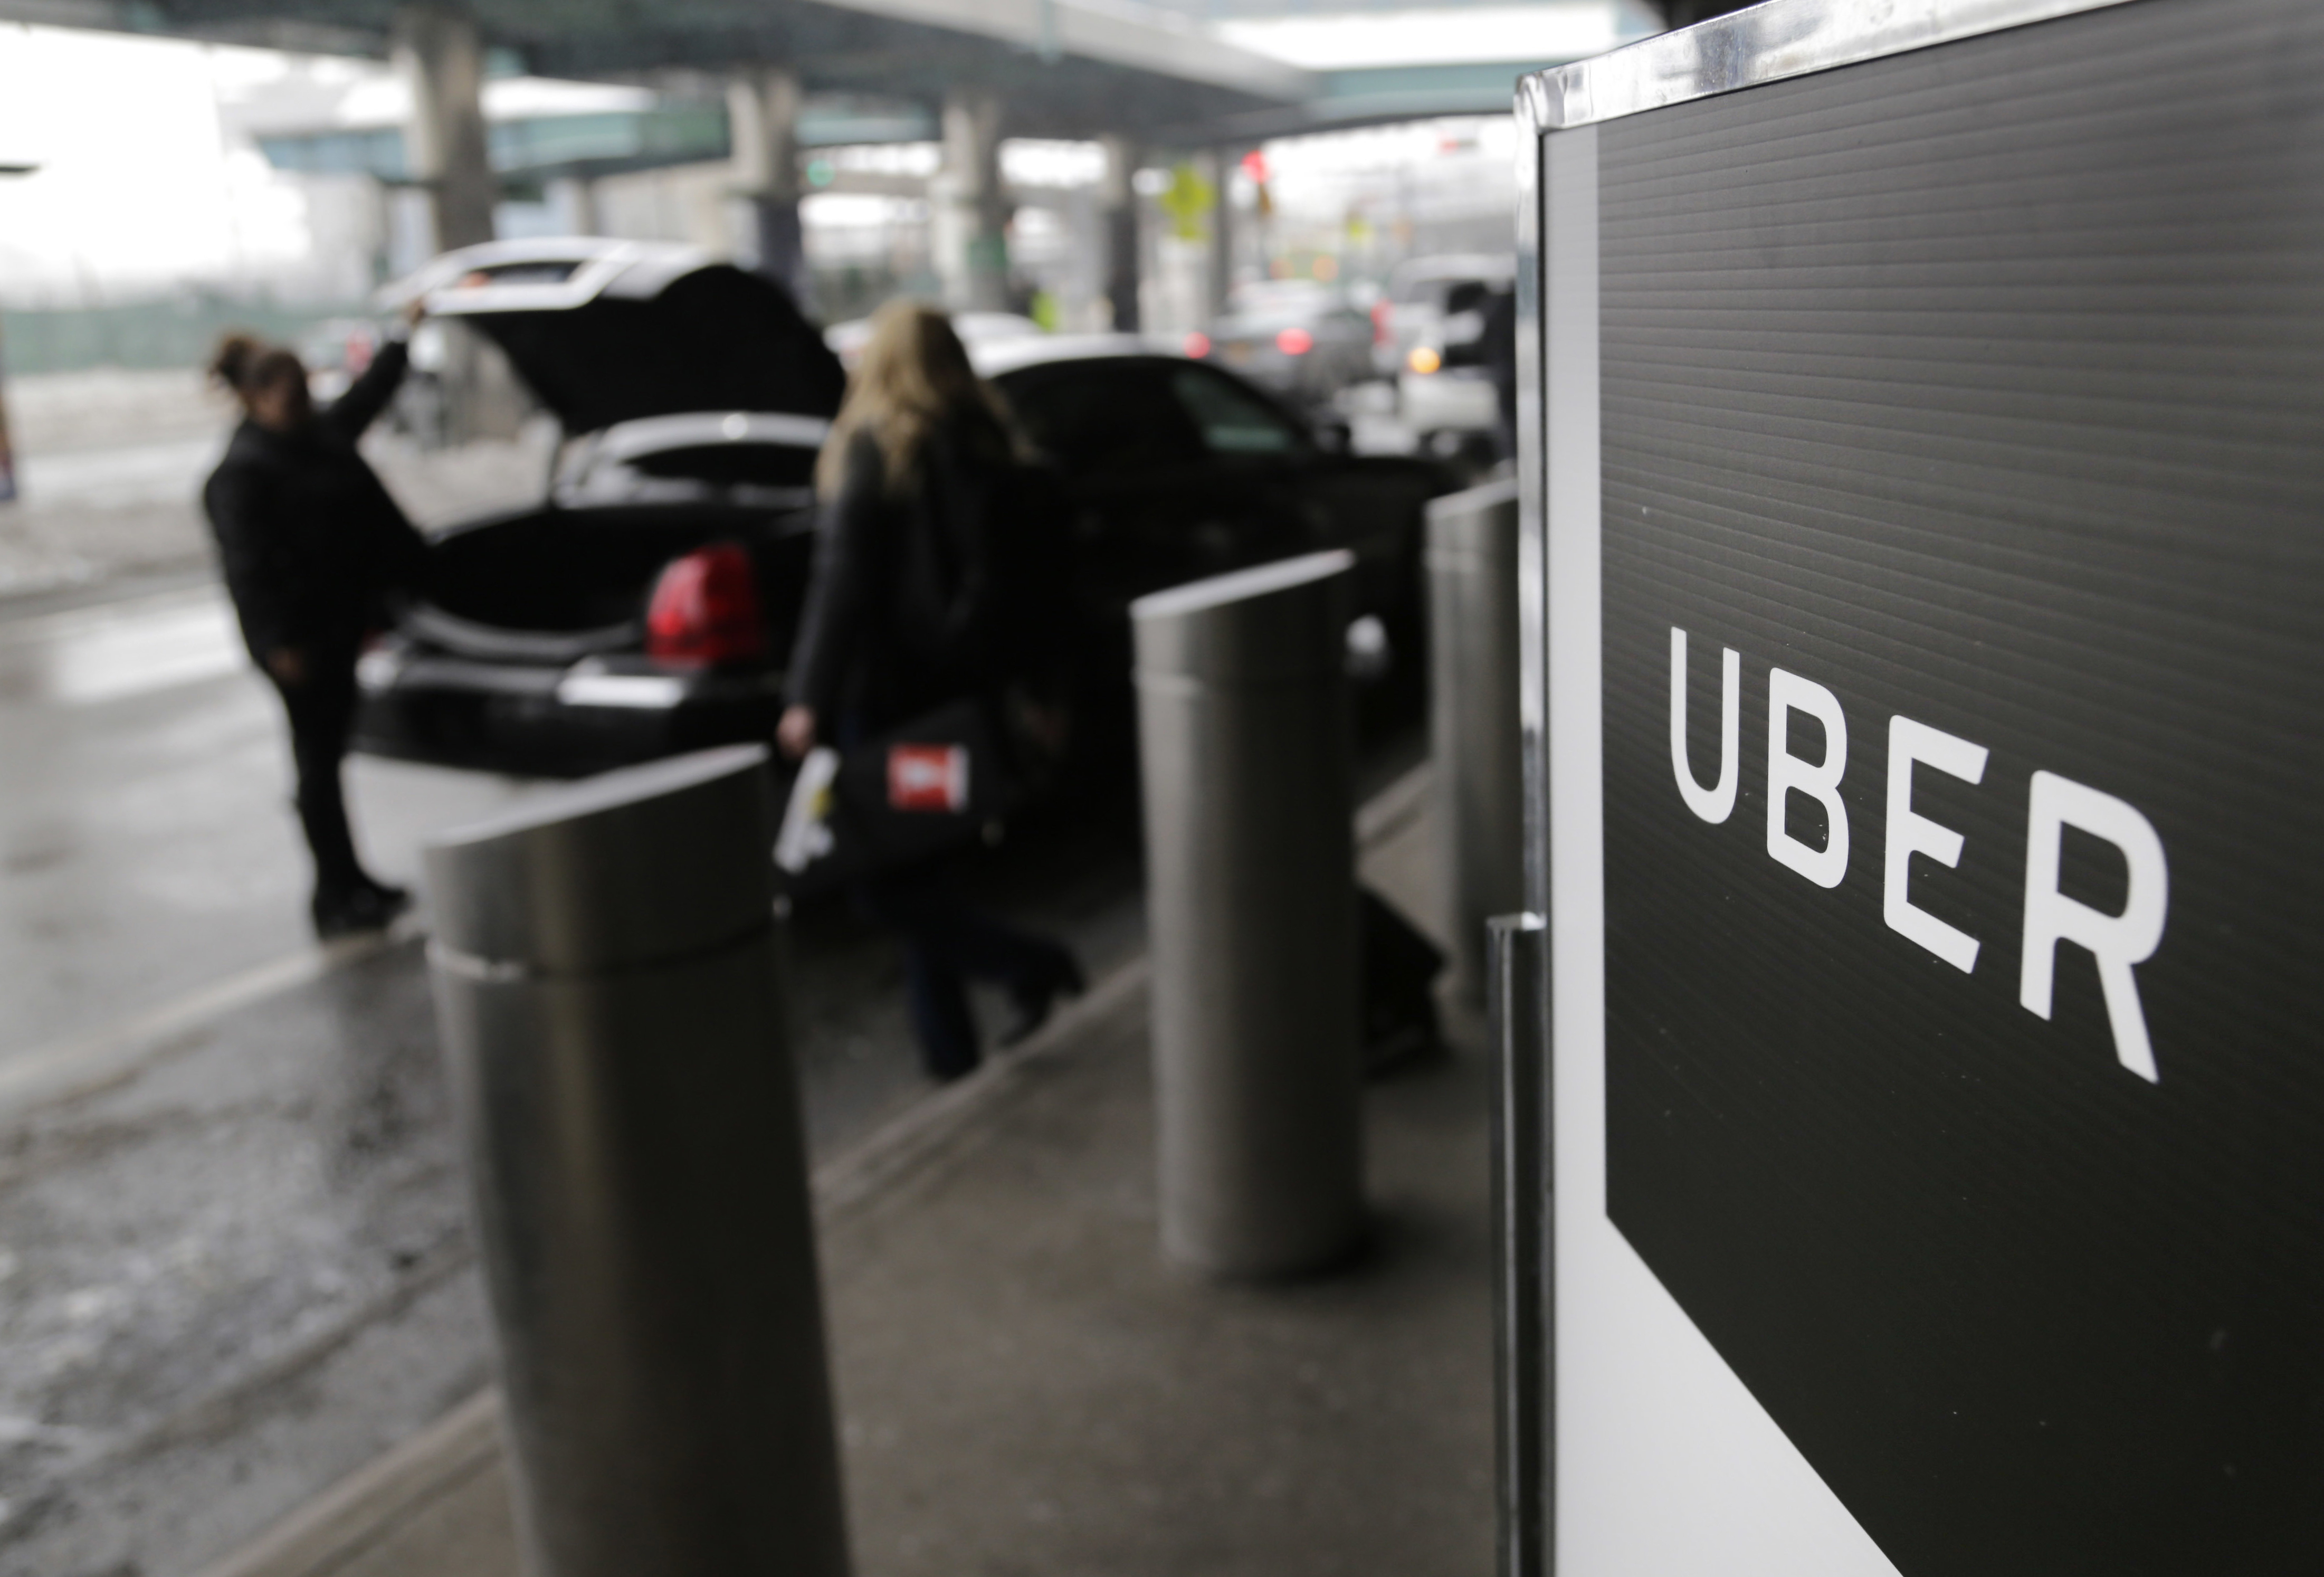 In this March 15, 2017, file photo, a sign marks a pick-up point for the Uber car service at LaGuardia Airport in New York. (Seth Wenig/AP)